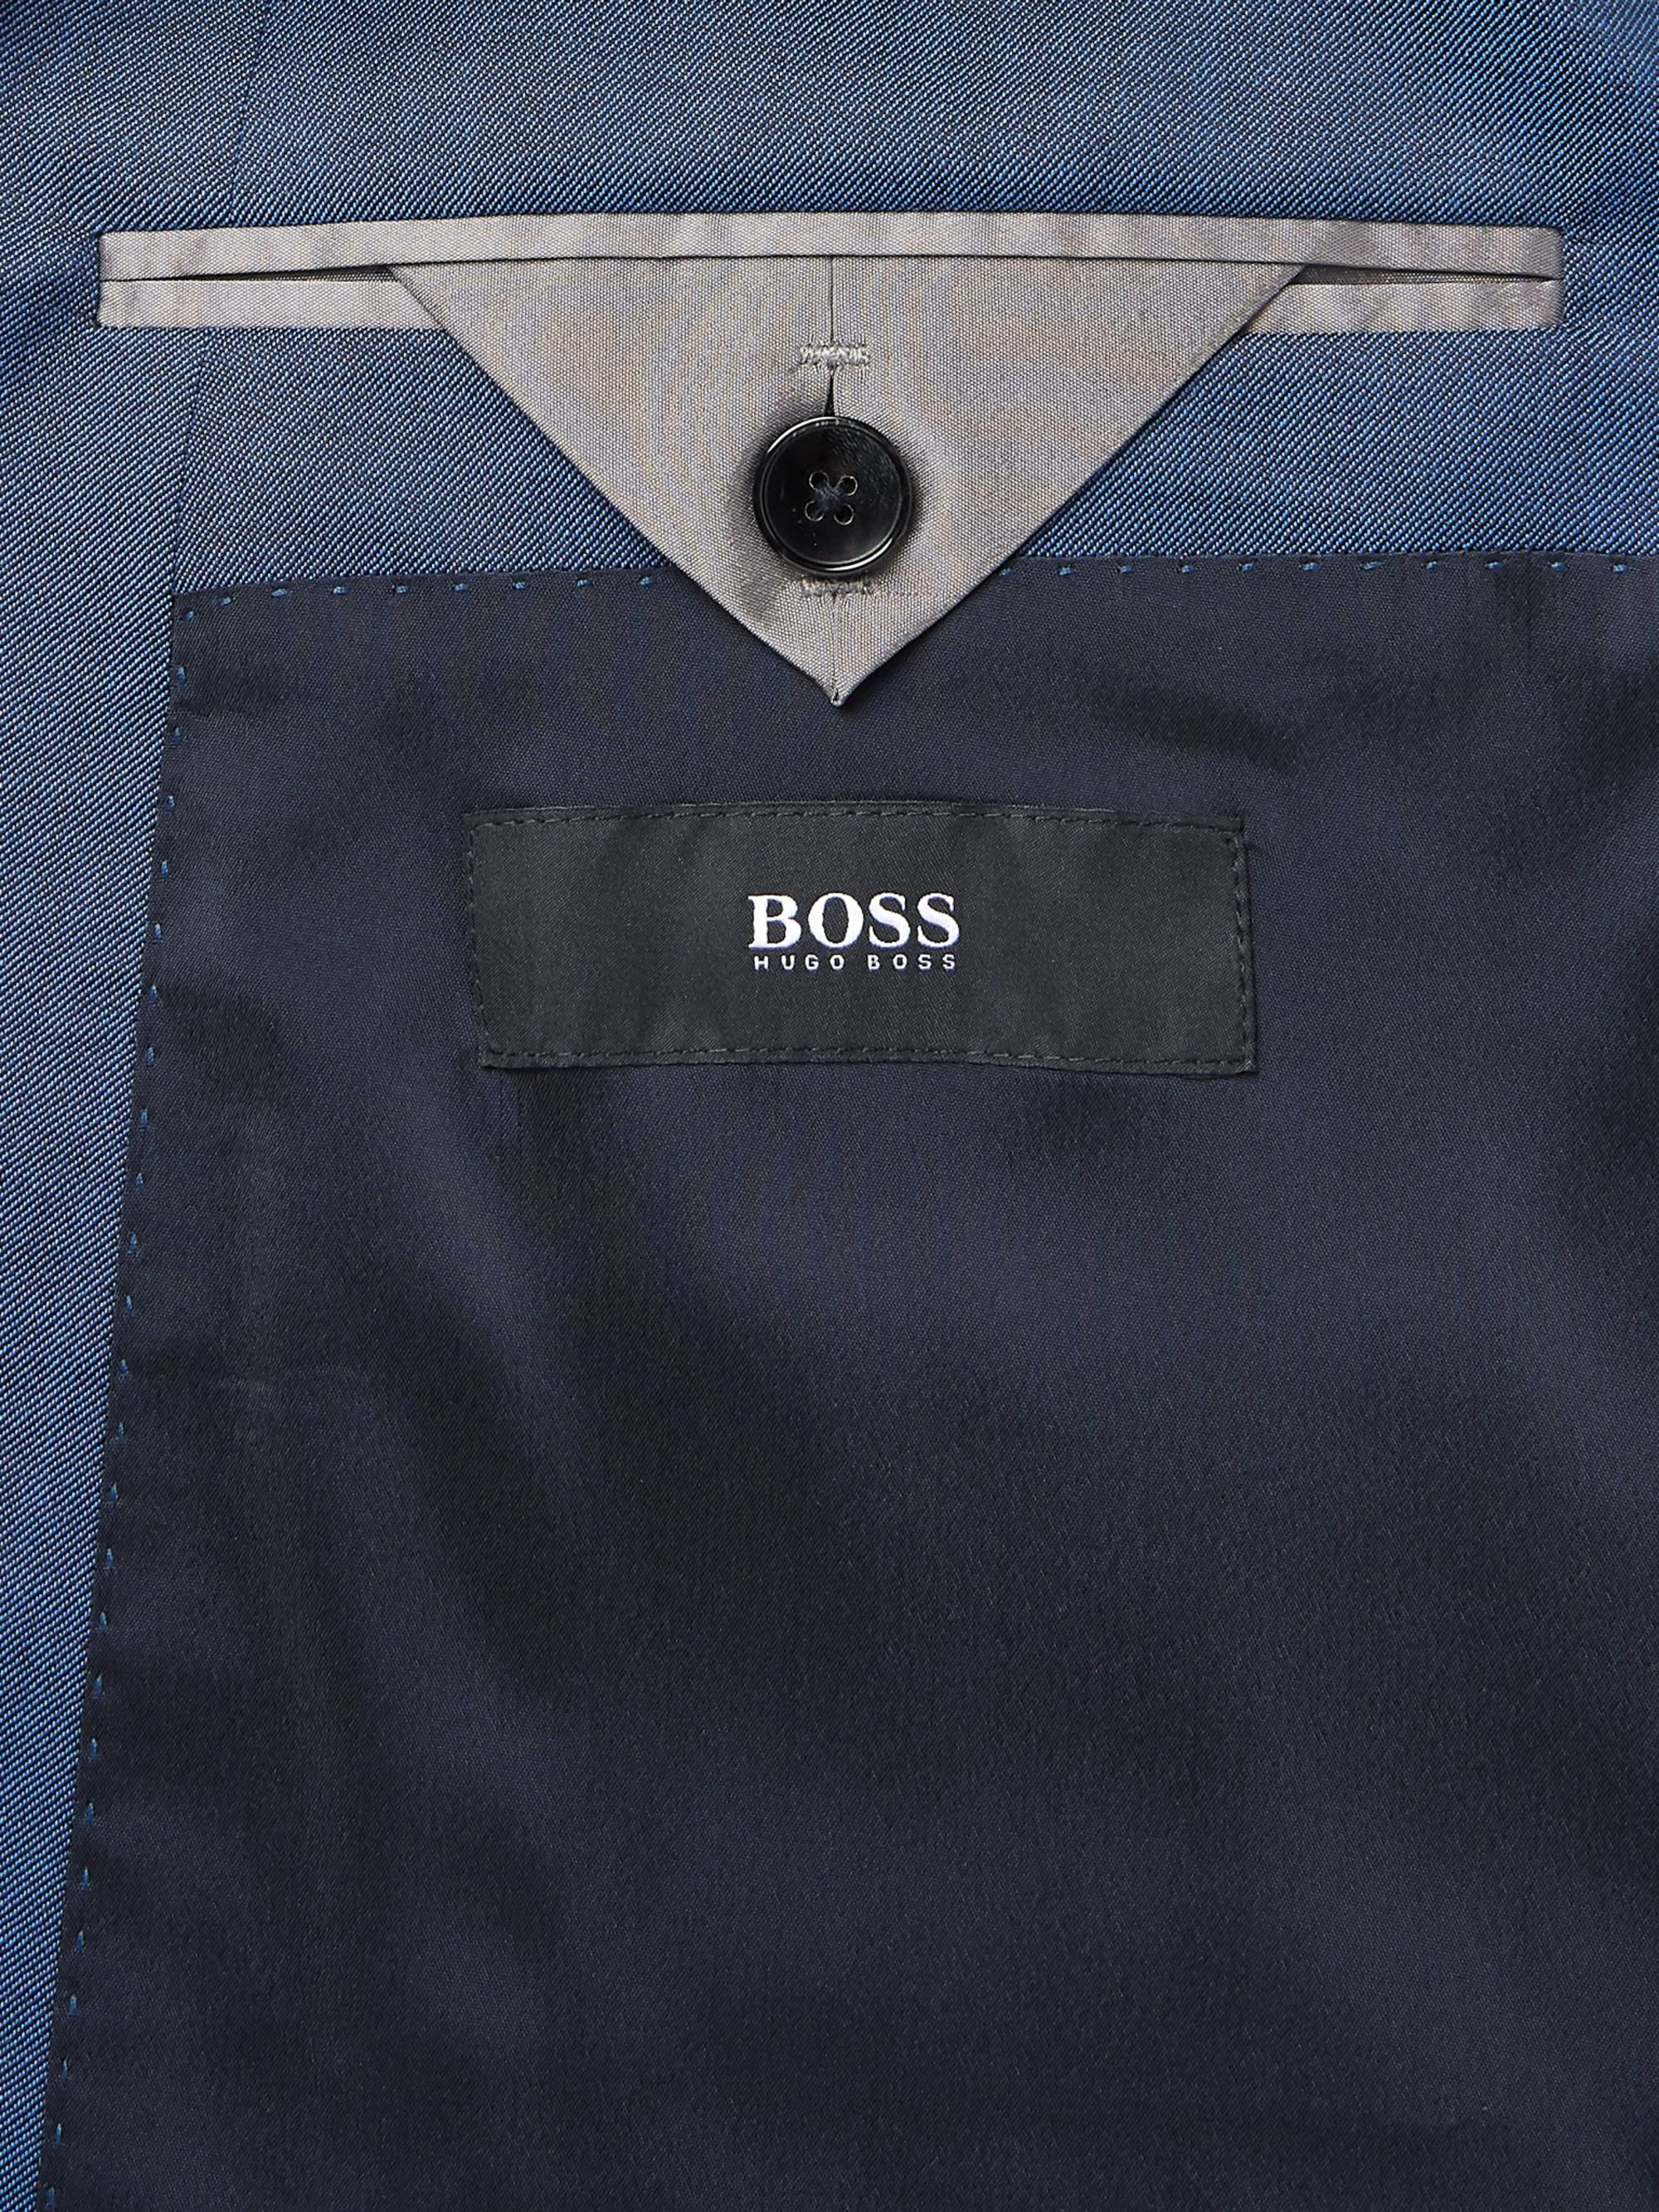 Hugo Boss Grey Huge/Genius Slim-Fit Super 120s Virgin Wool Suit